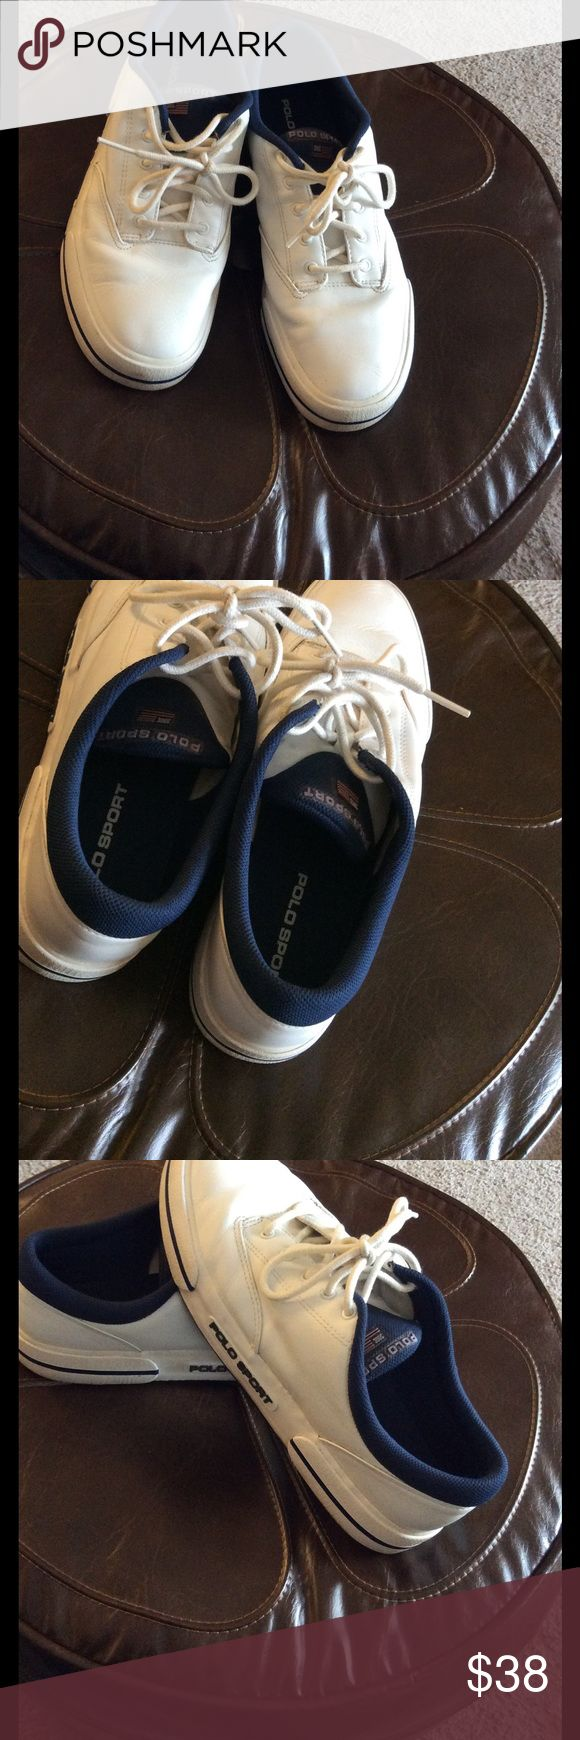 💞White leather man's shoes💞 Preowned in very good condition Polo by Ralph Lauren Shoes Boat Shoes